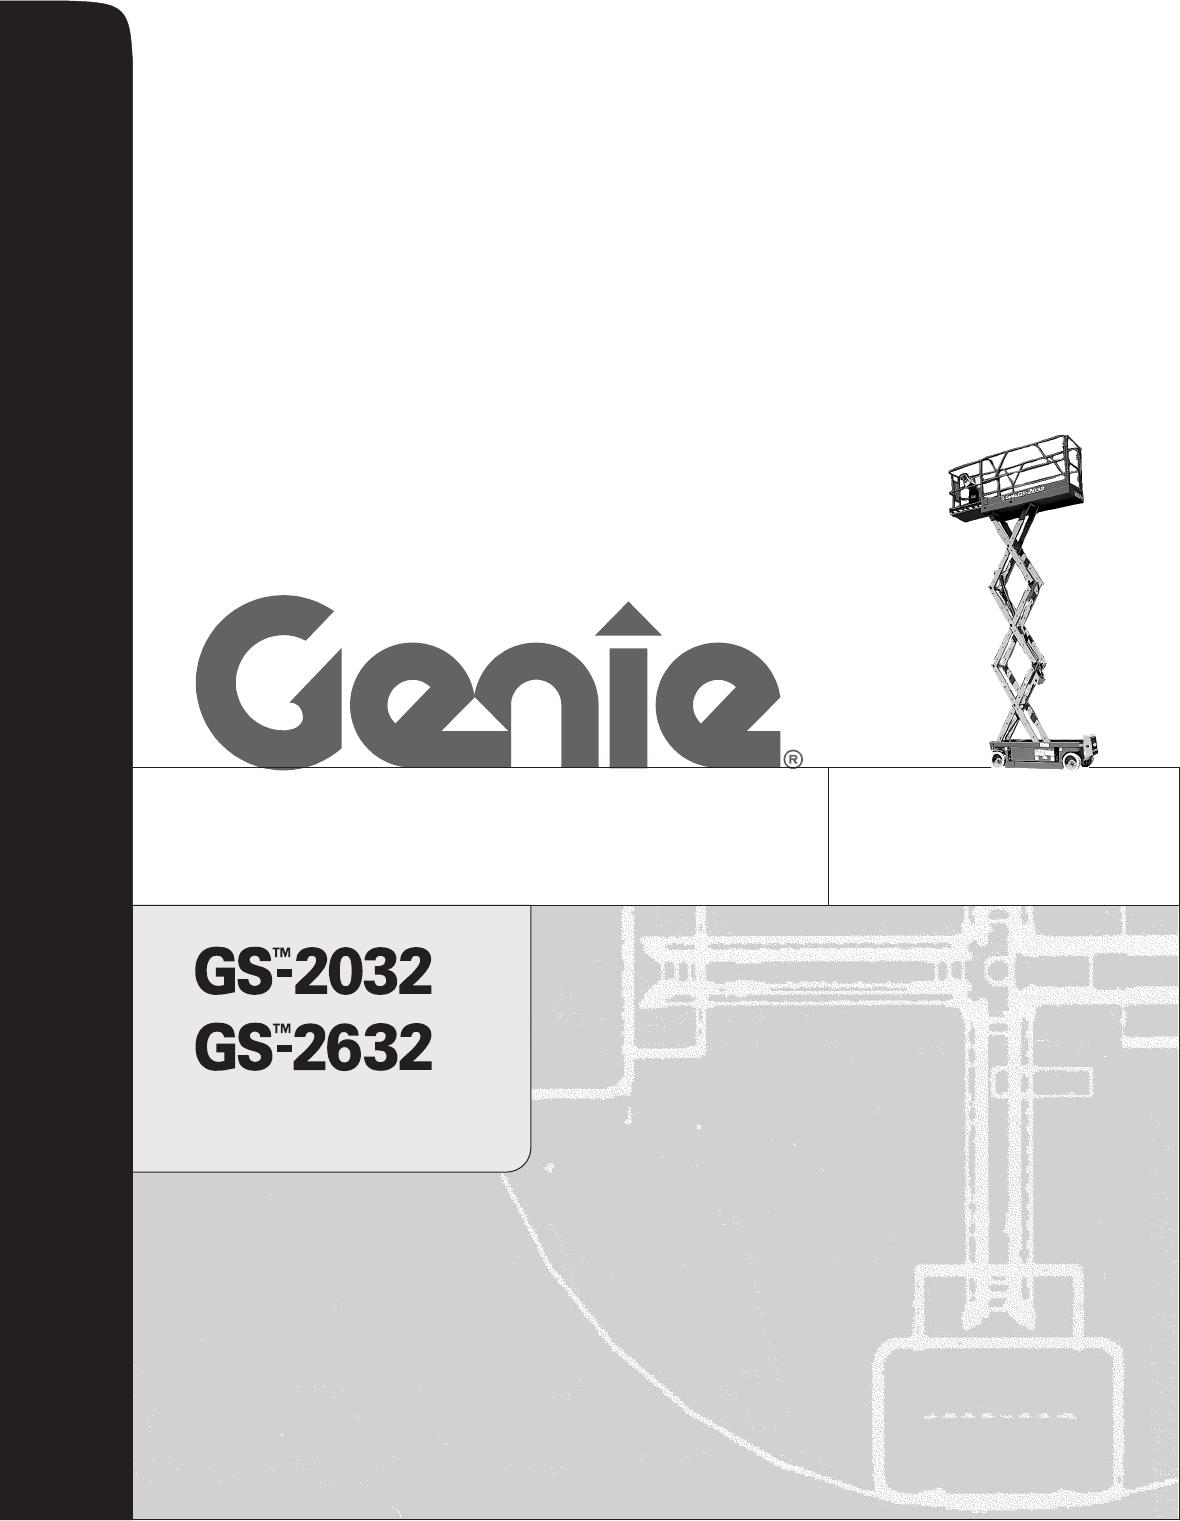 Genie scissor lift operators manual